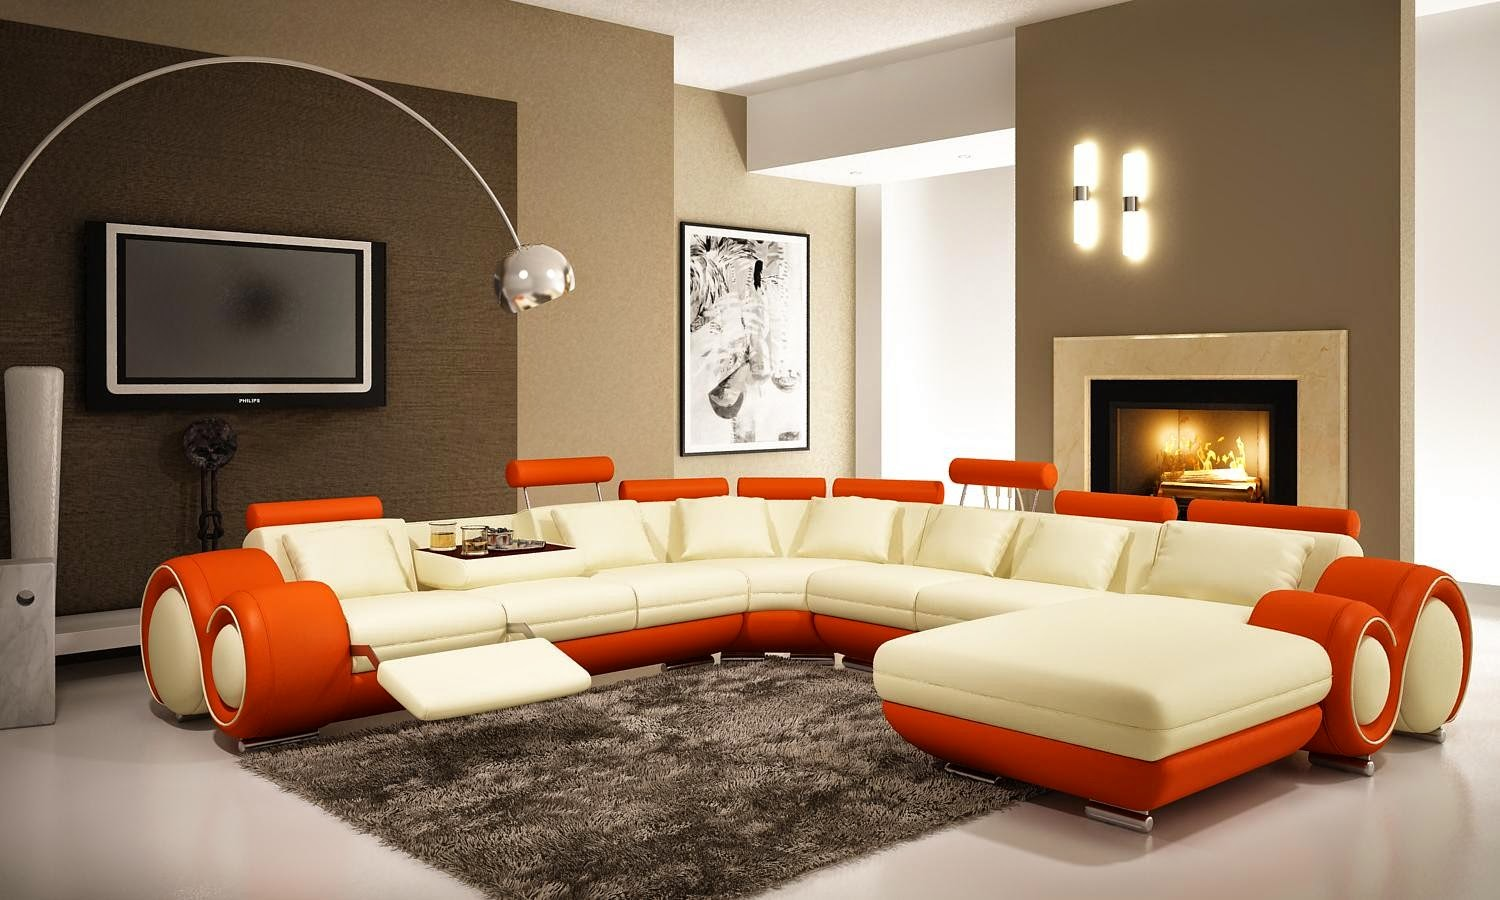 how to choose a color for the interior minimalist home - Home Improvement Design